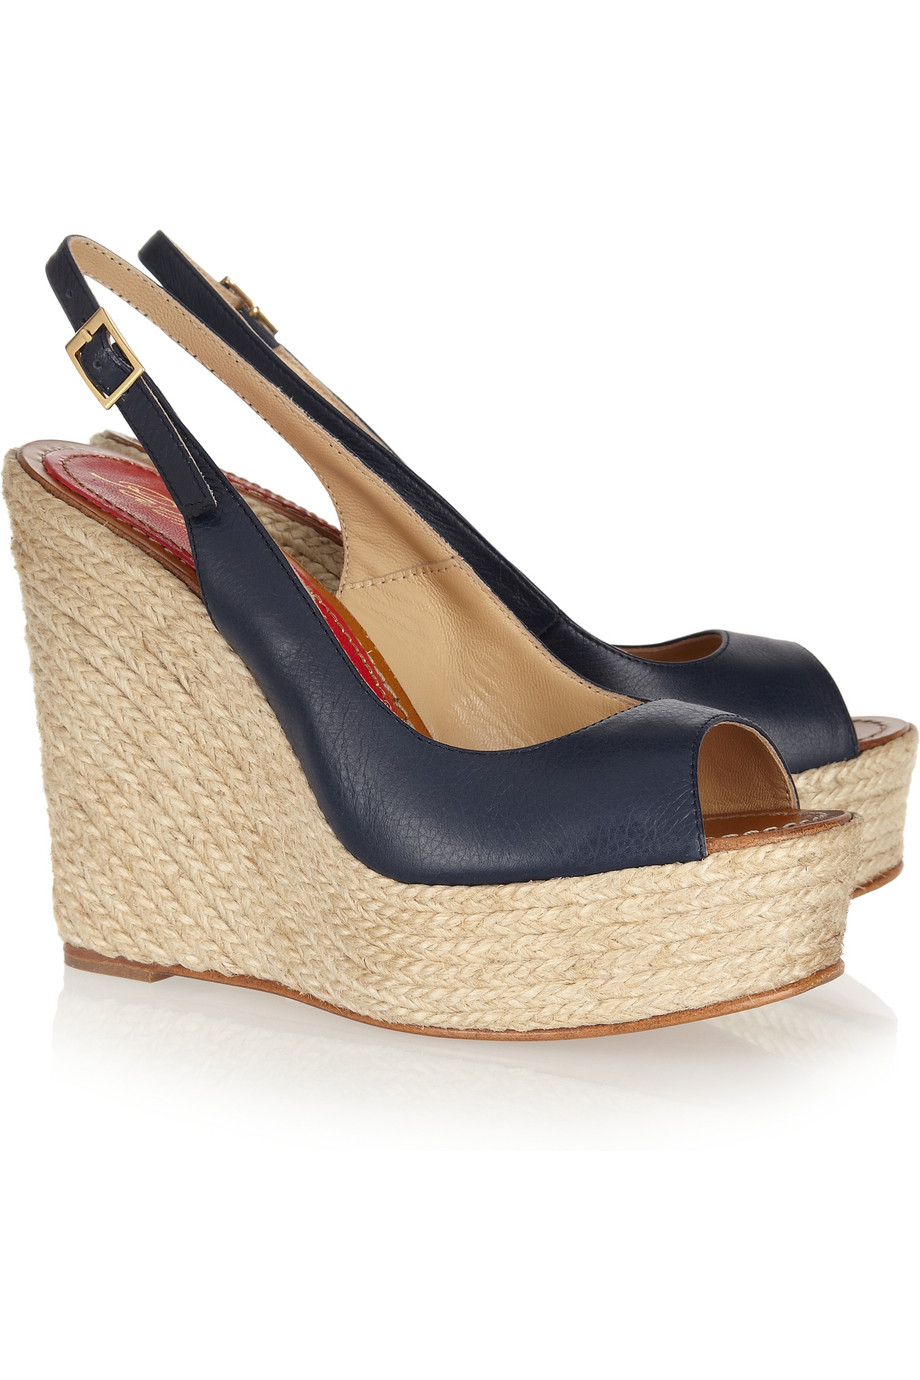 Lyst Paloma Barcel 243 Leather Espadrille Wedge Sandals In Blue